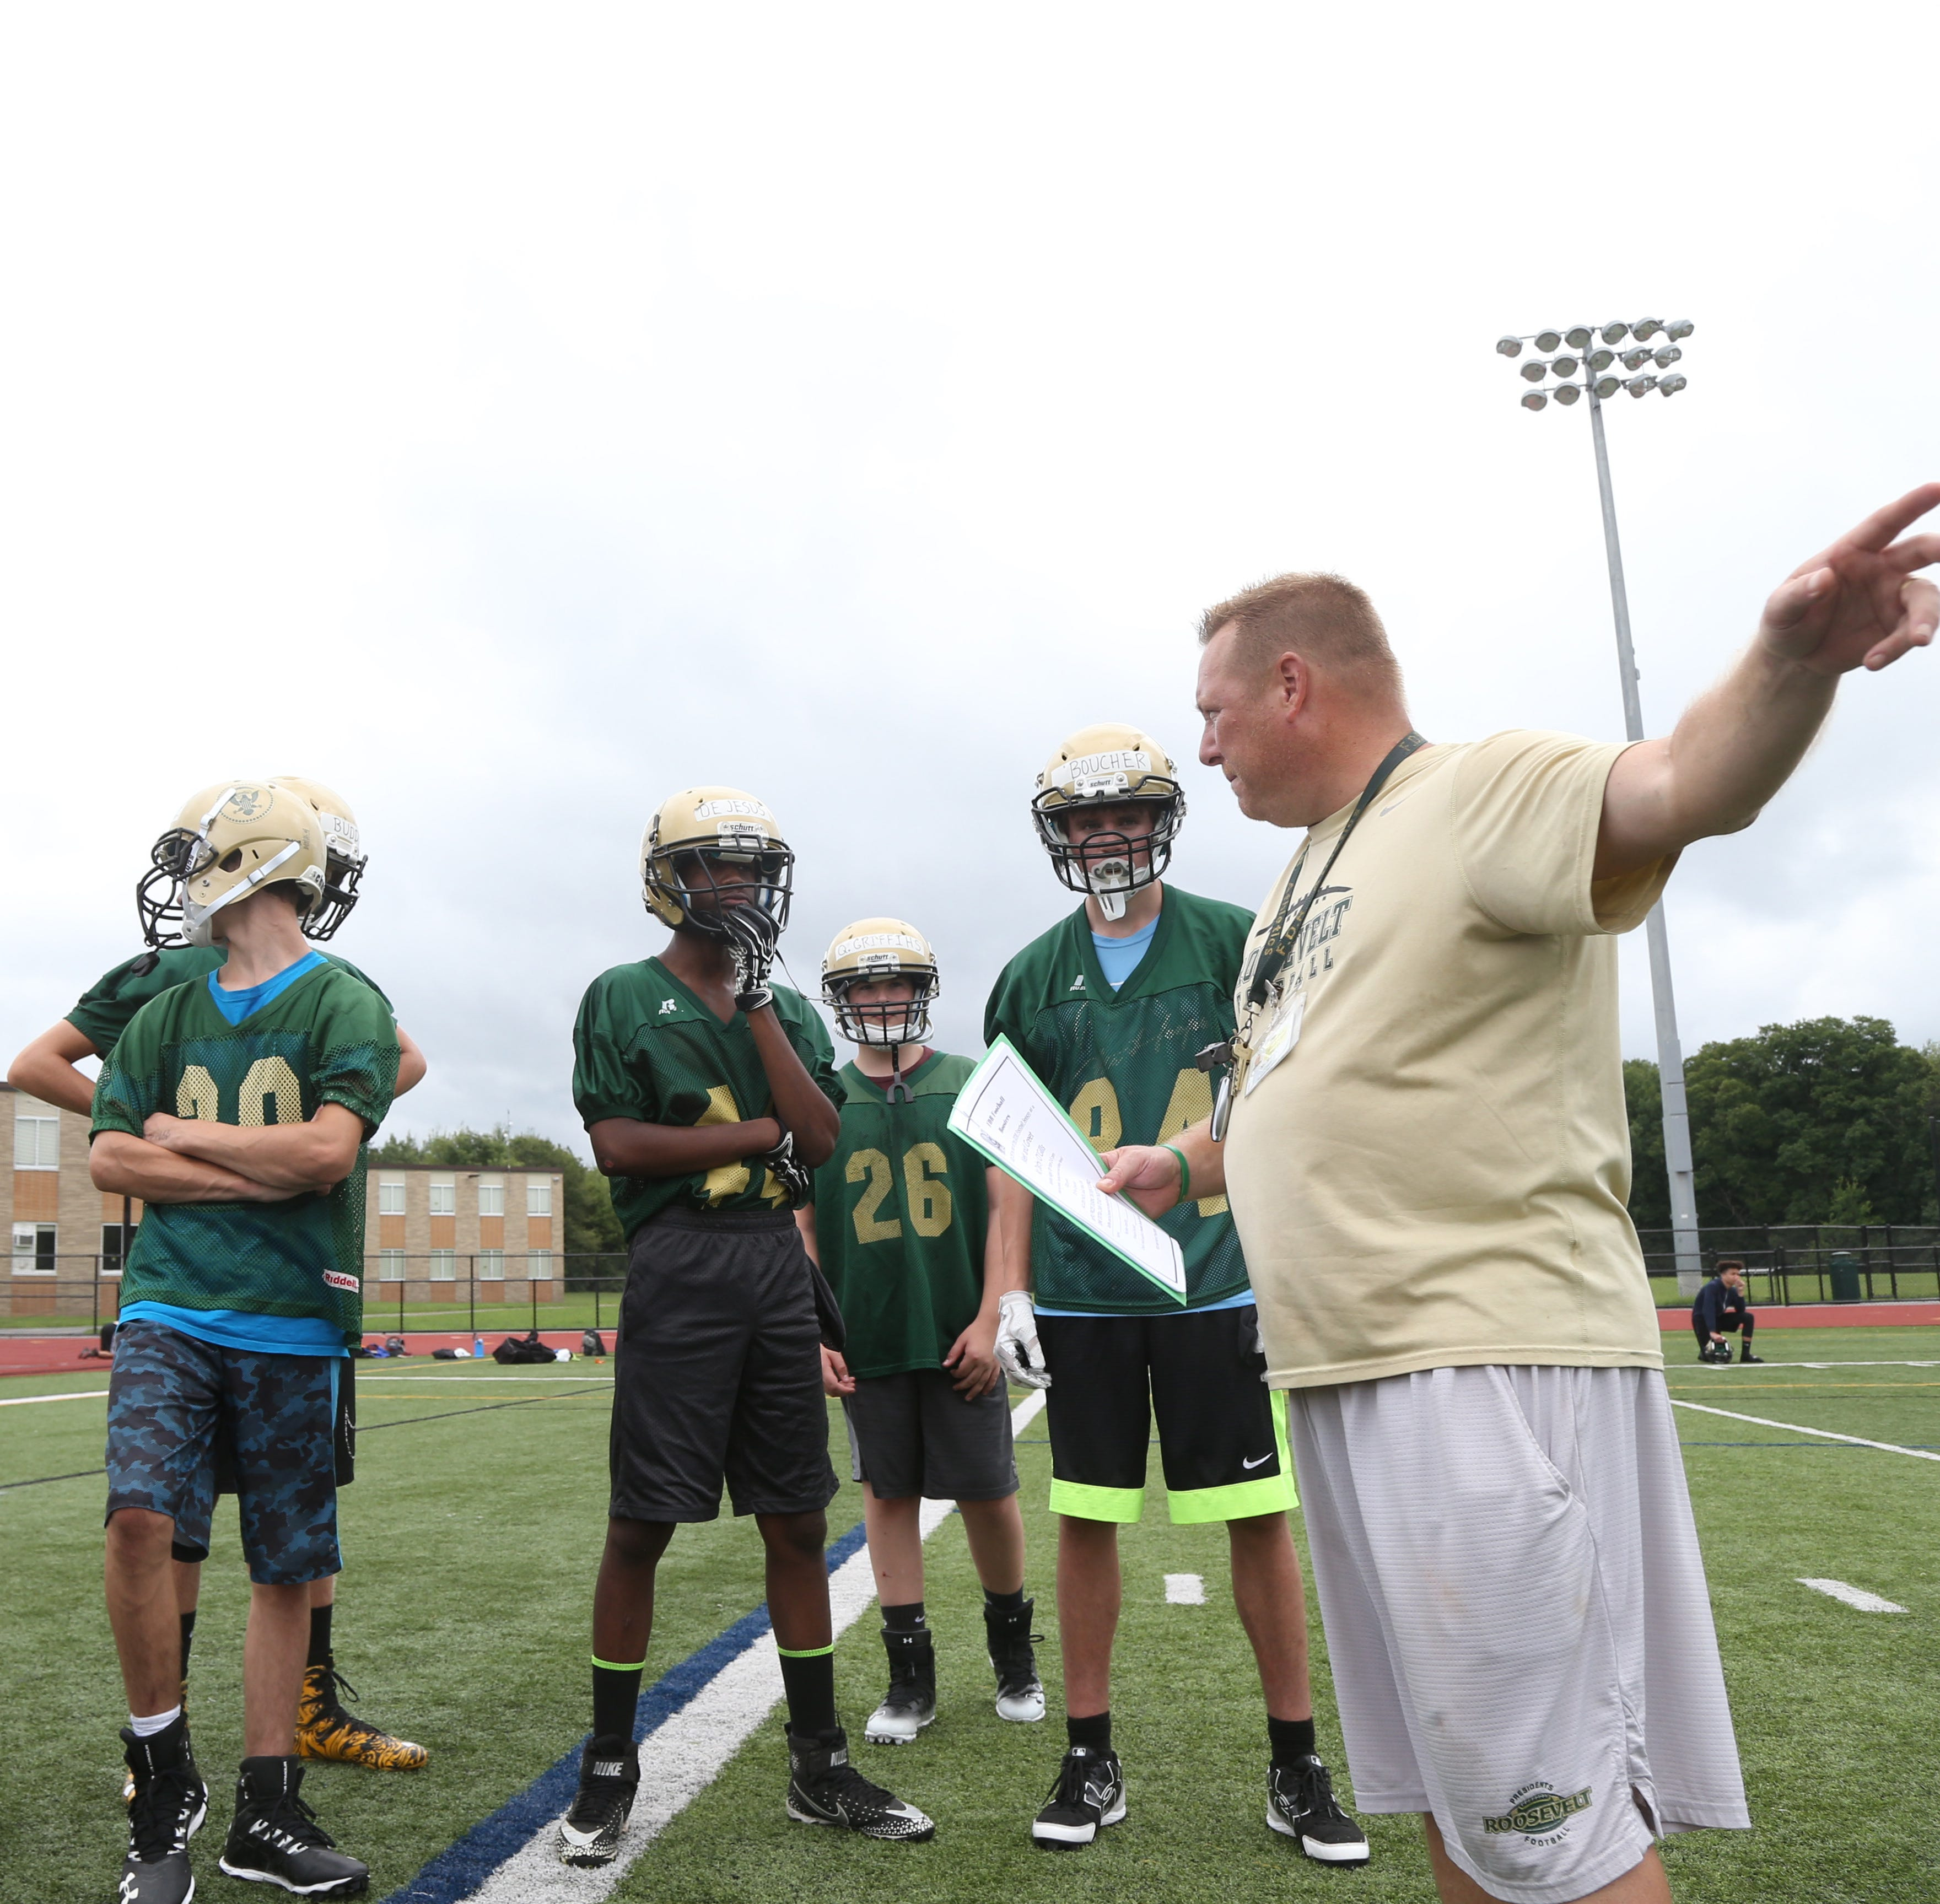 FDR football: Three takeaways from the first day of practice